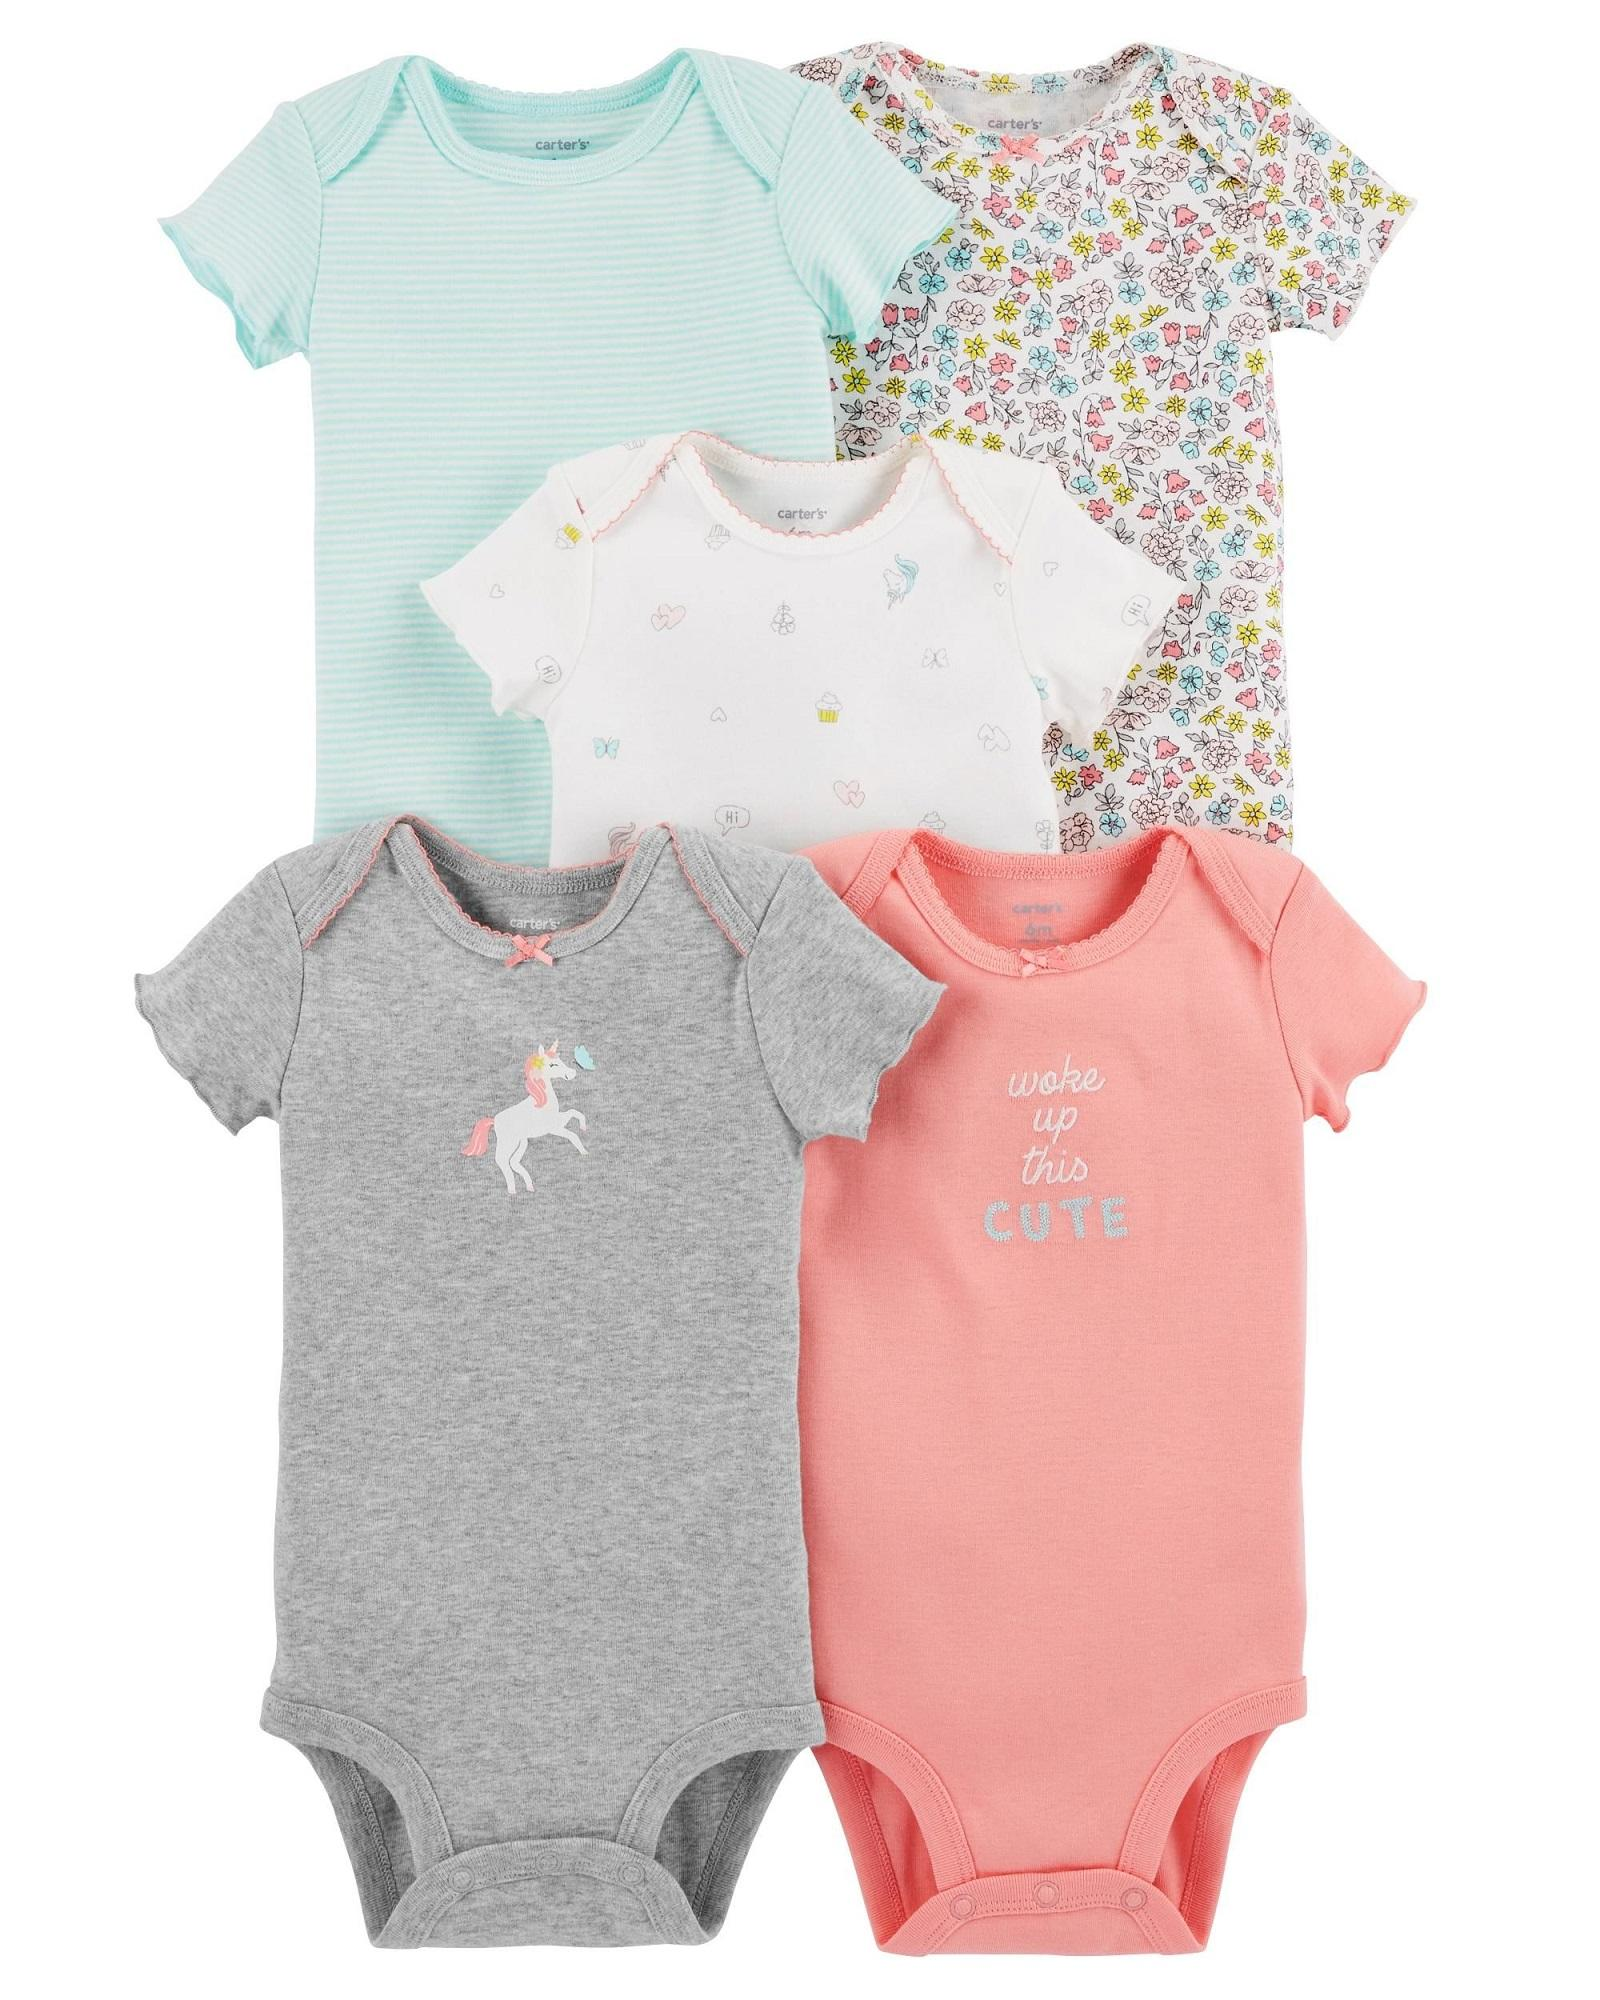 Buy Carter Baby Clothing Accessories Lazada Jumper Love Cagl192 Carters Girls 5 Pack Short Sleeve Original Bodysuits Woke Up This